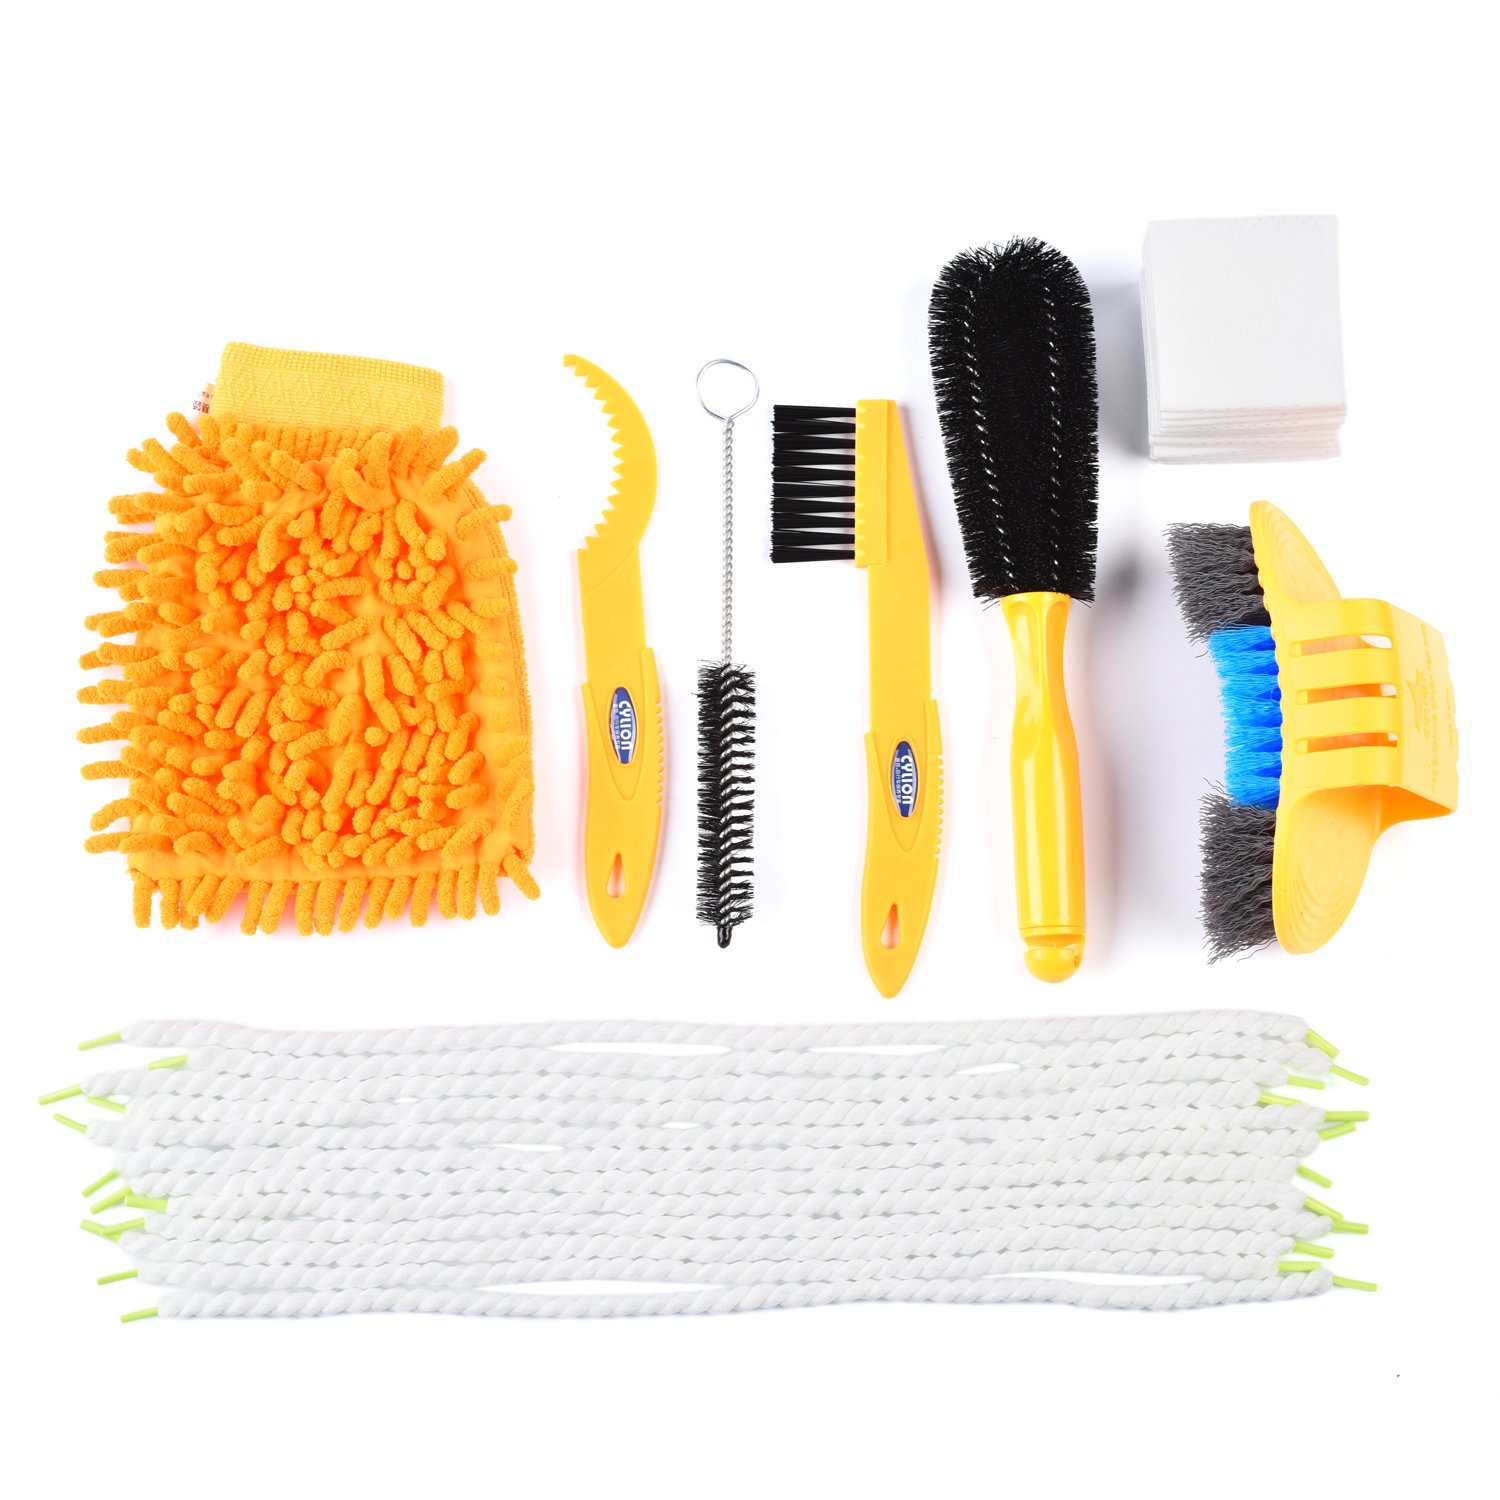 Weanas Bike Cleaning Brush Tool Kit Set with Gear Floss Microfiber Cleaning Rope and Tissue, Multi Function Bike Chain Cleaning Tool